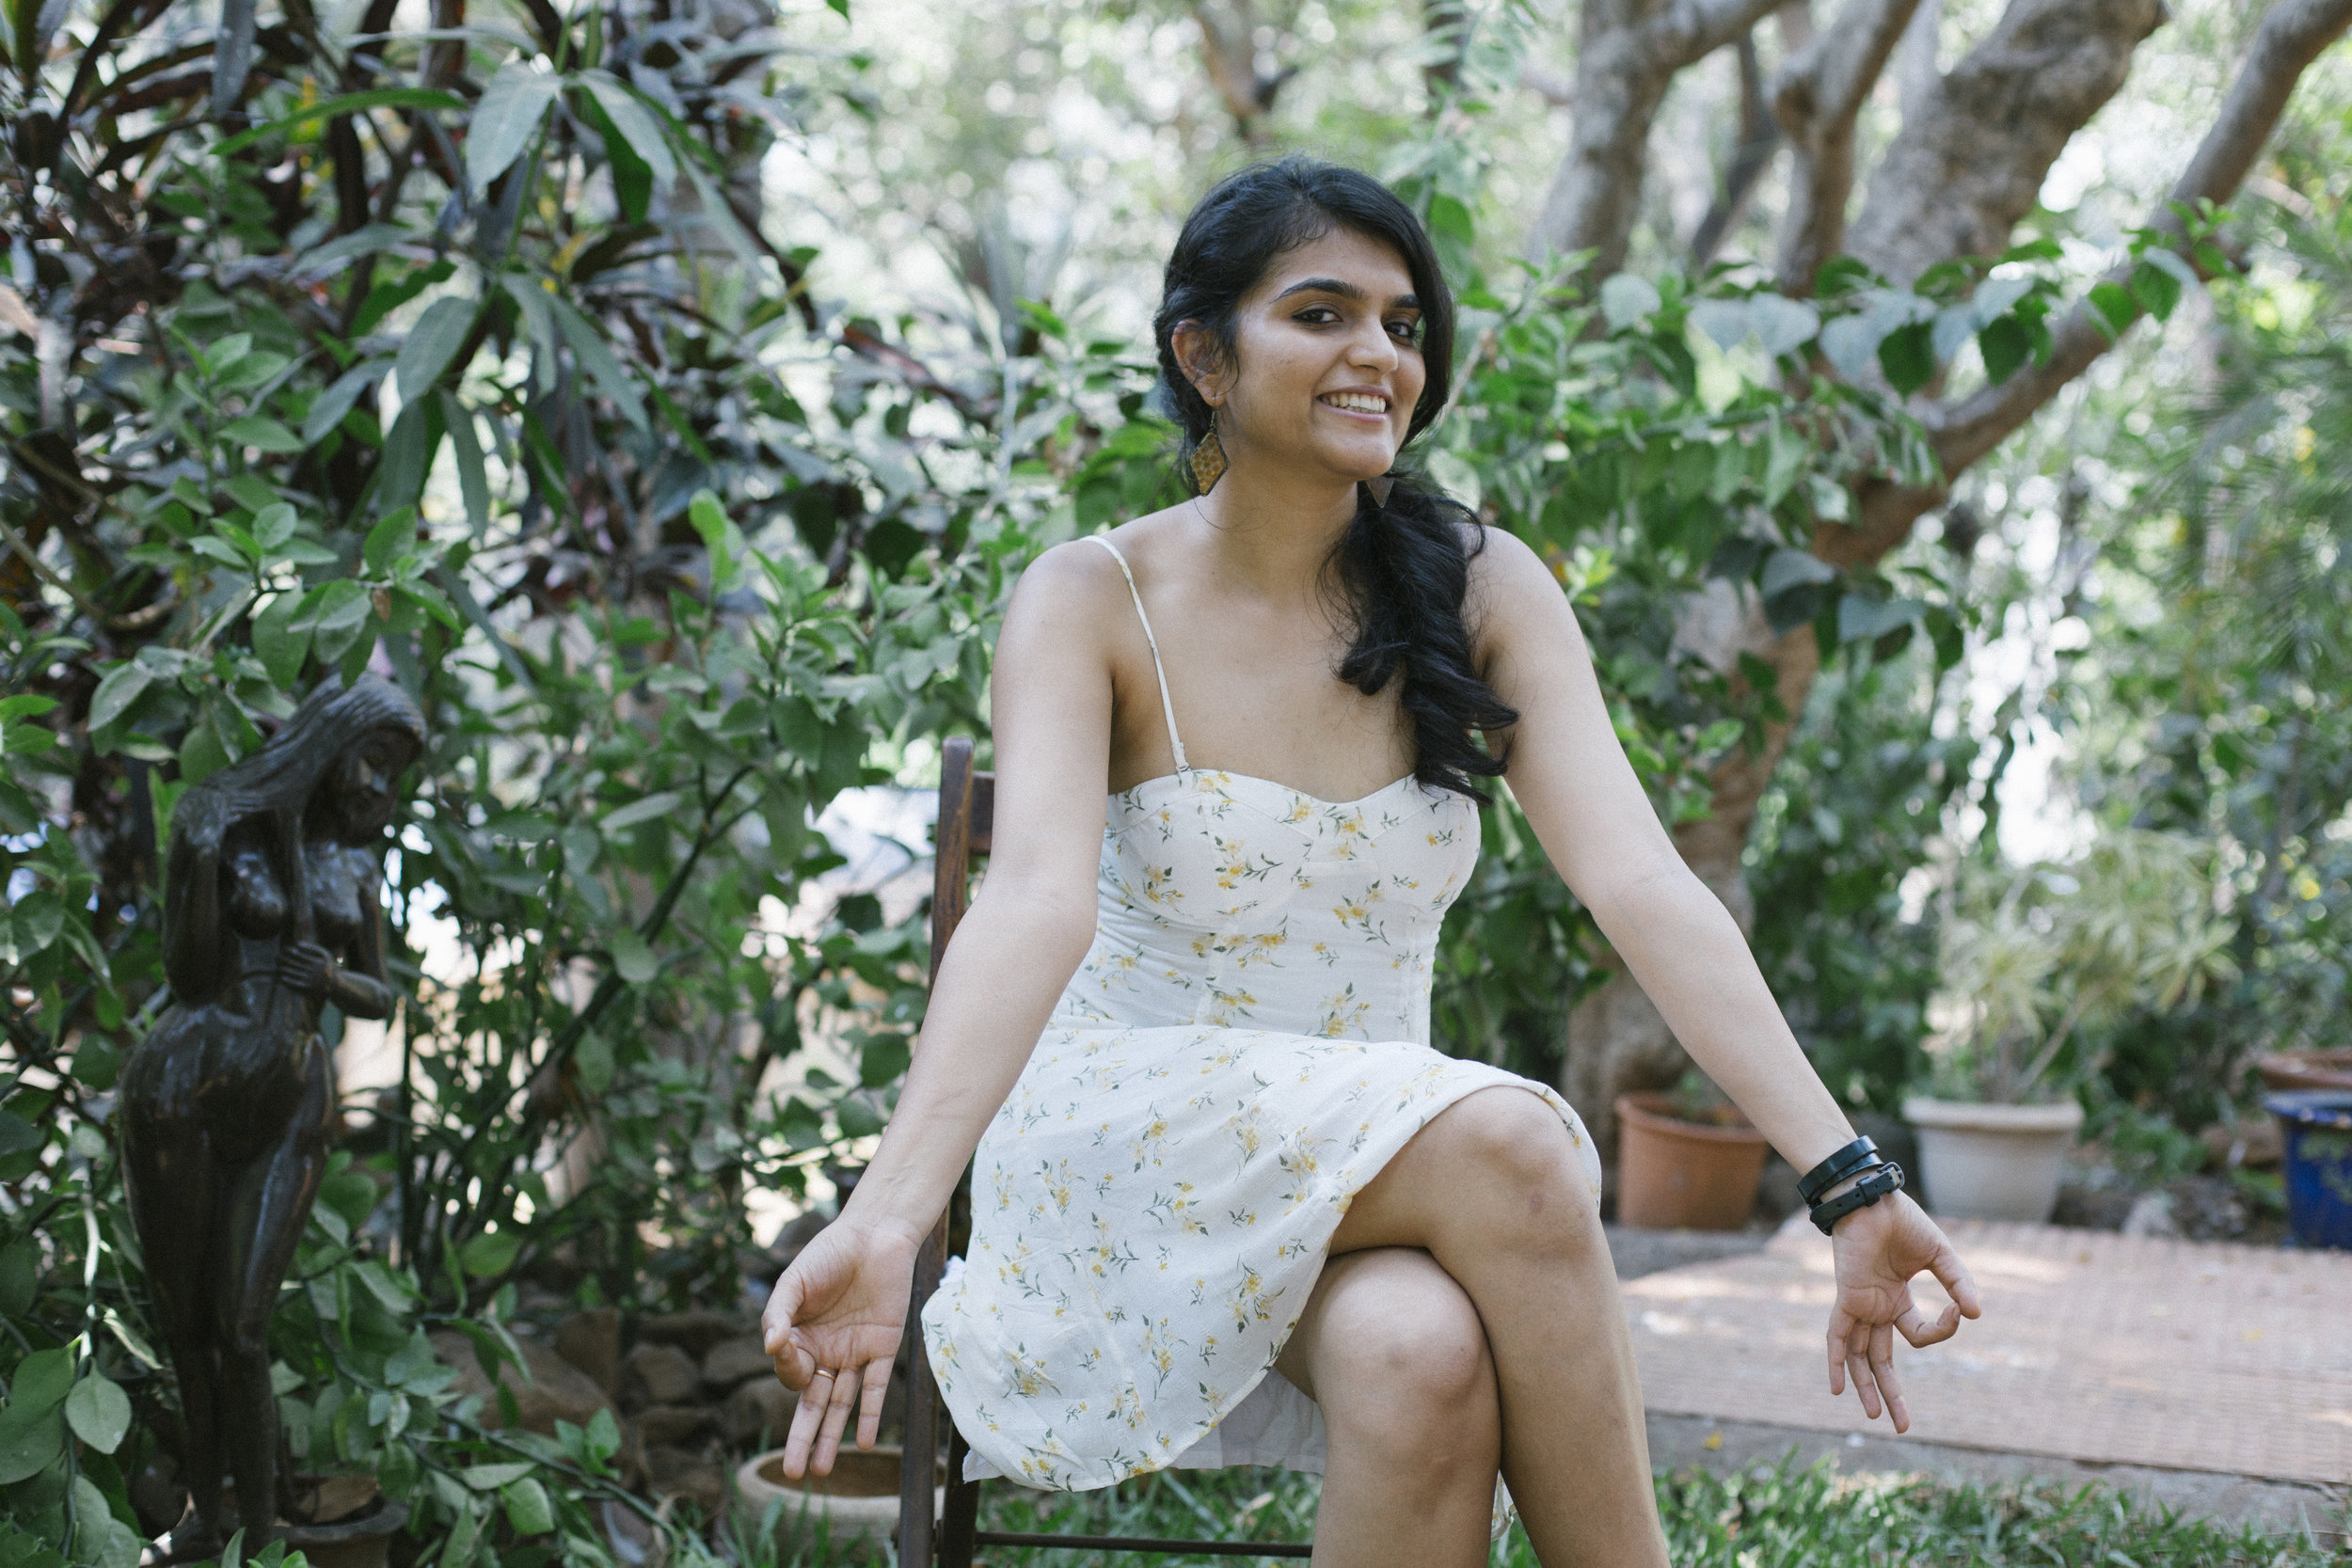 An ex-copywriter, Manaswi now writes for the wildly popular AIB, she co-wrote the sketch  A Woman's Besties  amongst many others.